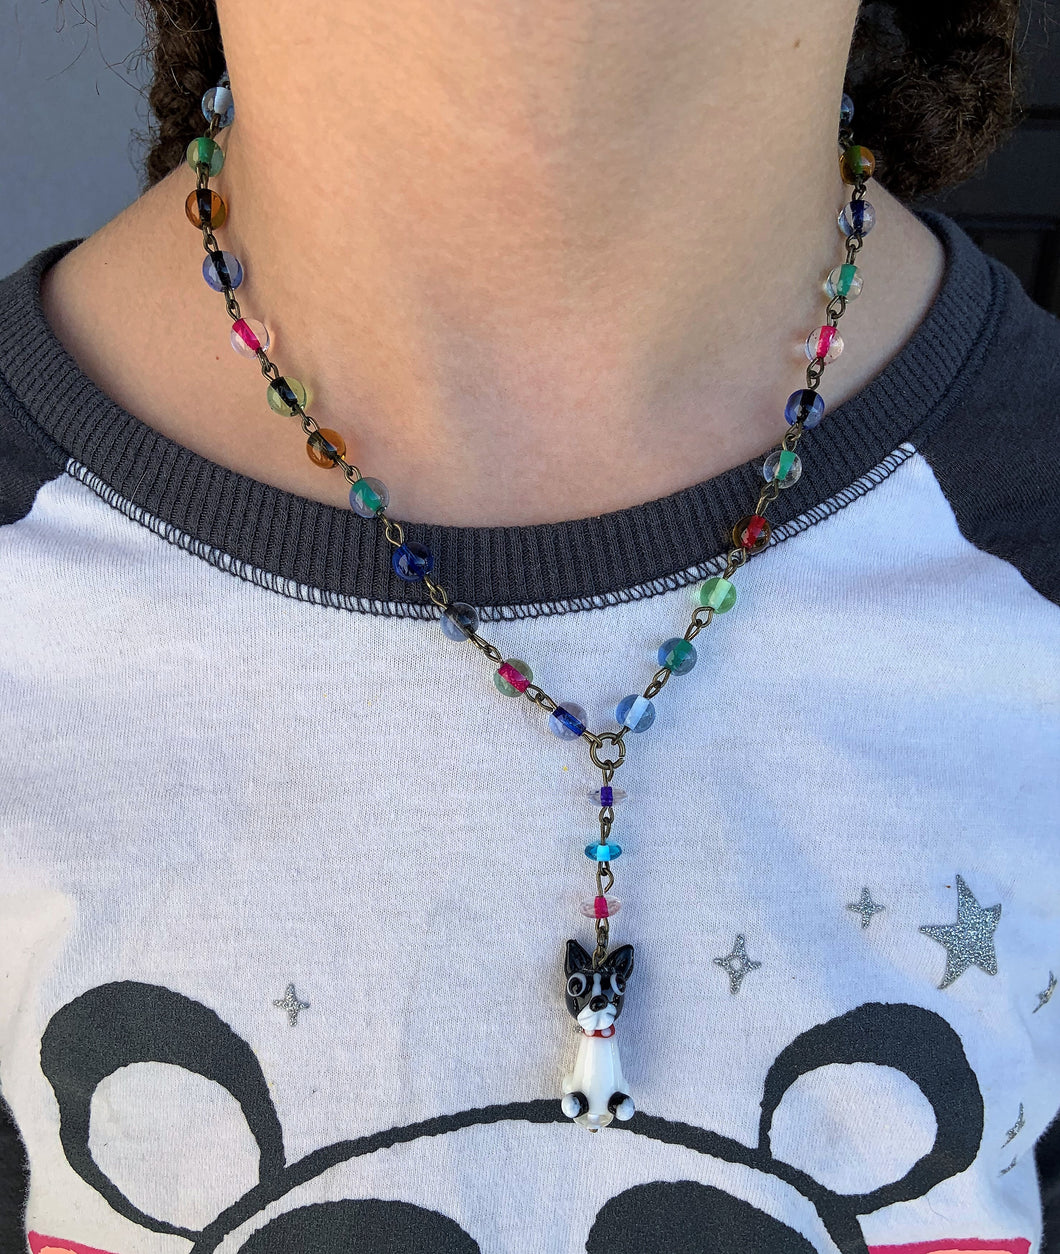 Kid's Necklace (Dog with multicolor beads) by Hamilton Design House